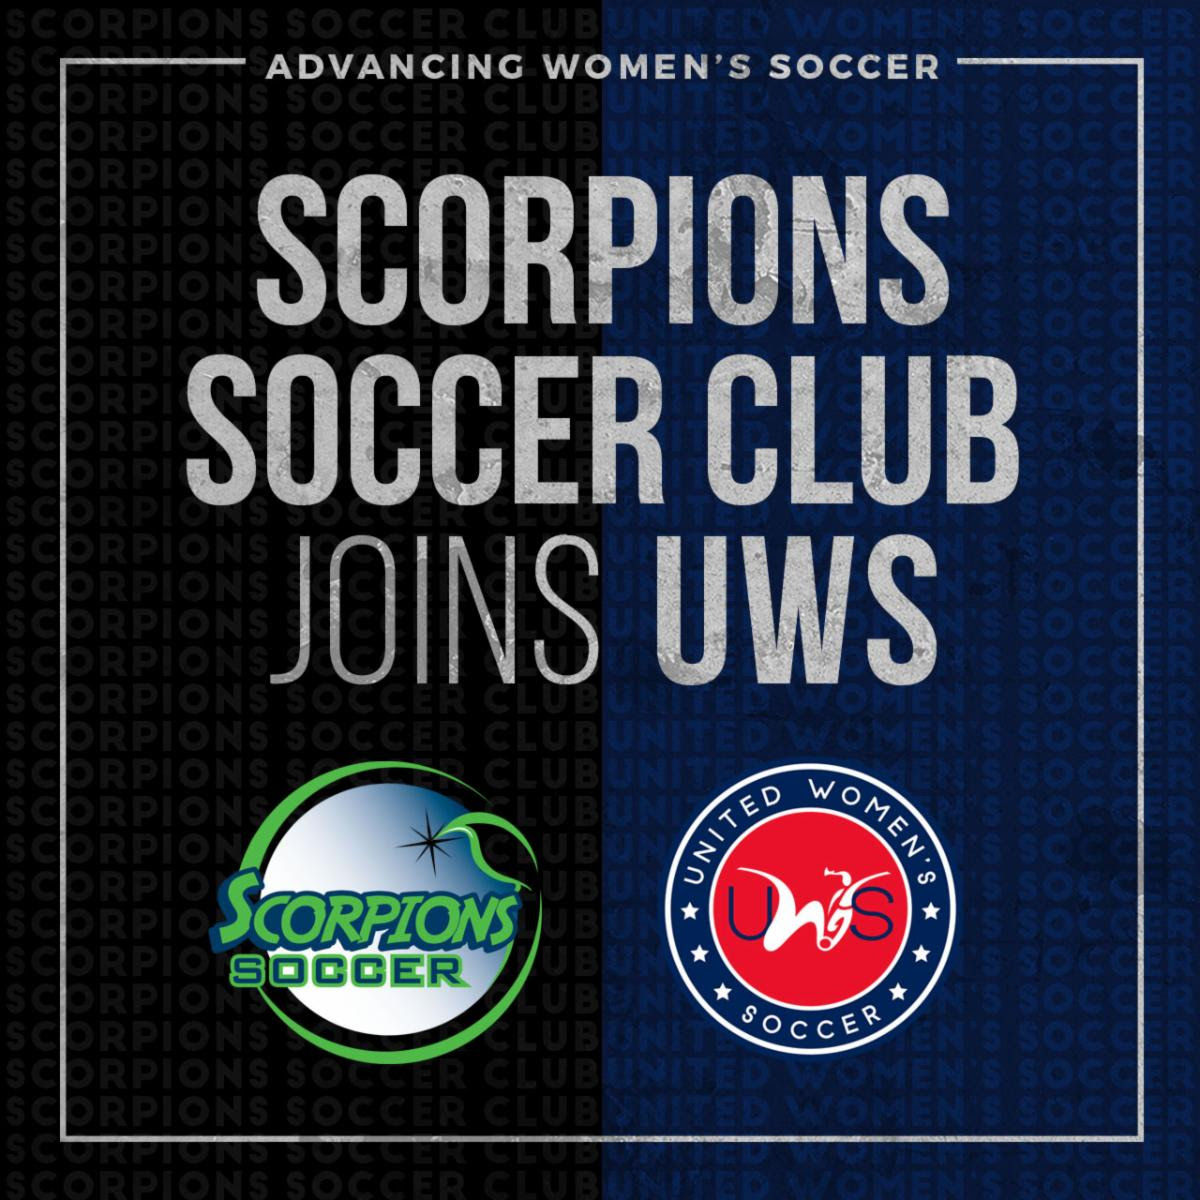 Scorpions Joins United Women's Soccer League